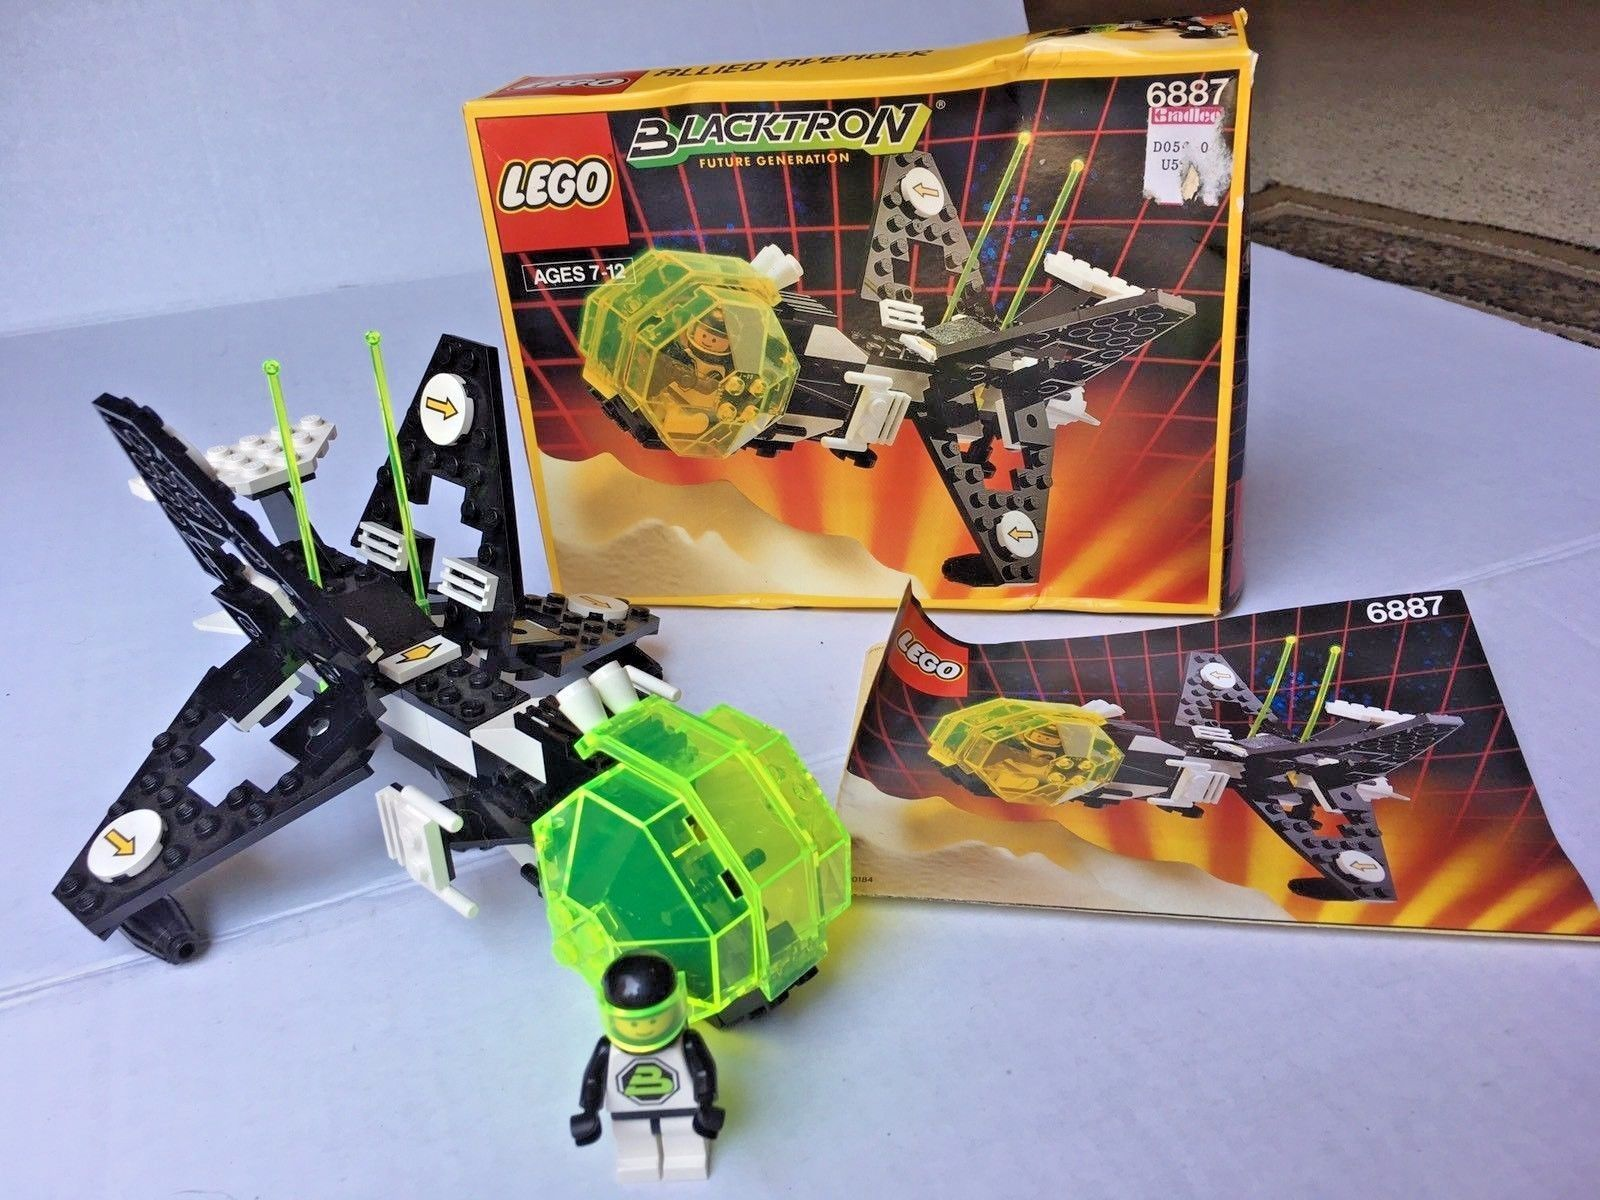 Lego Legoland Blacktron Allied Avenger 6887 Complete W Box